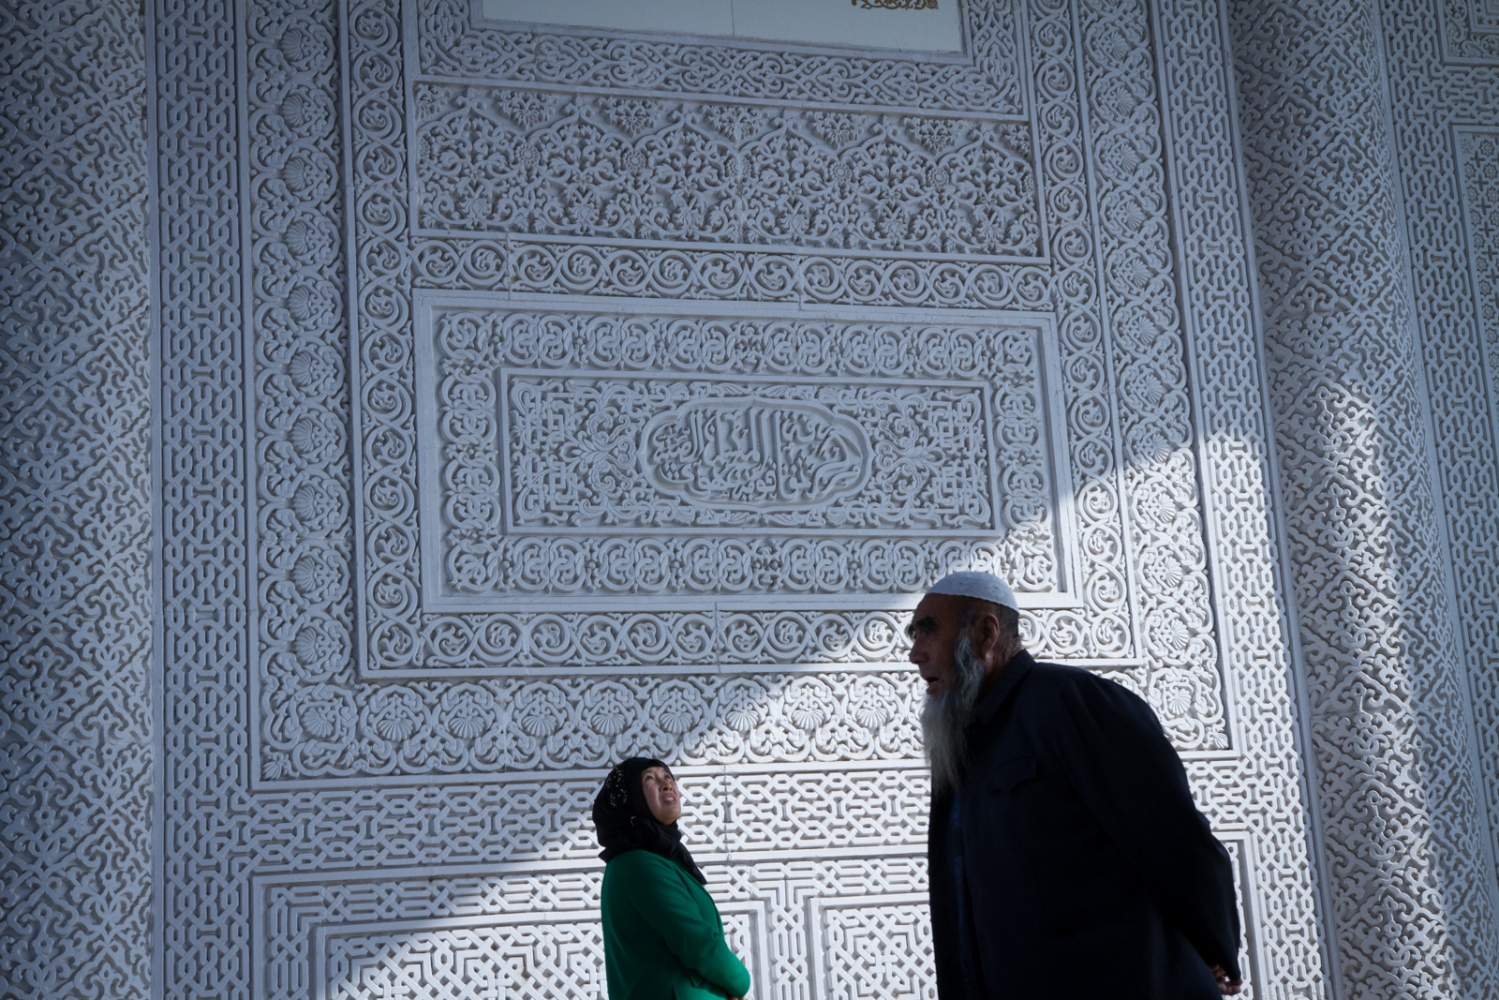 Inside the main gate of the Hui Culture Park, whose design was inspired by India's Taj Mahal, wall carvings with Arabic calligraphy mimic traditional Islamic architectural patterns.